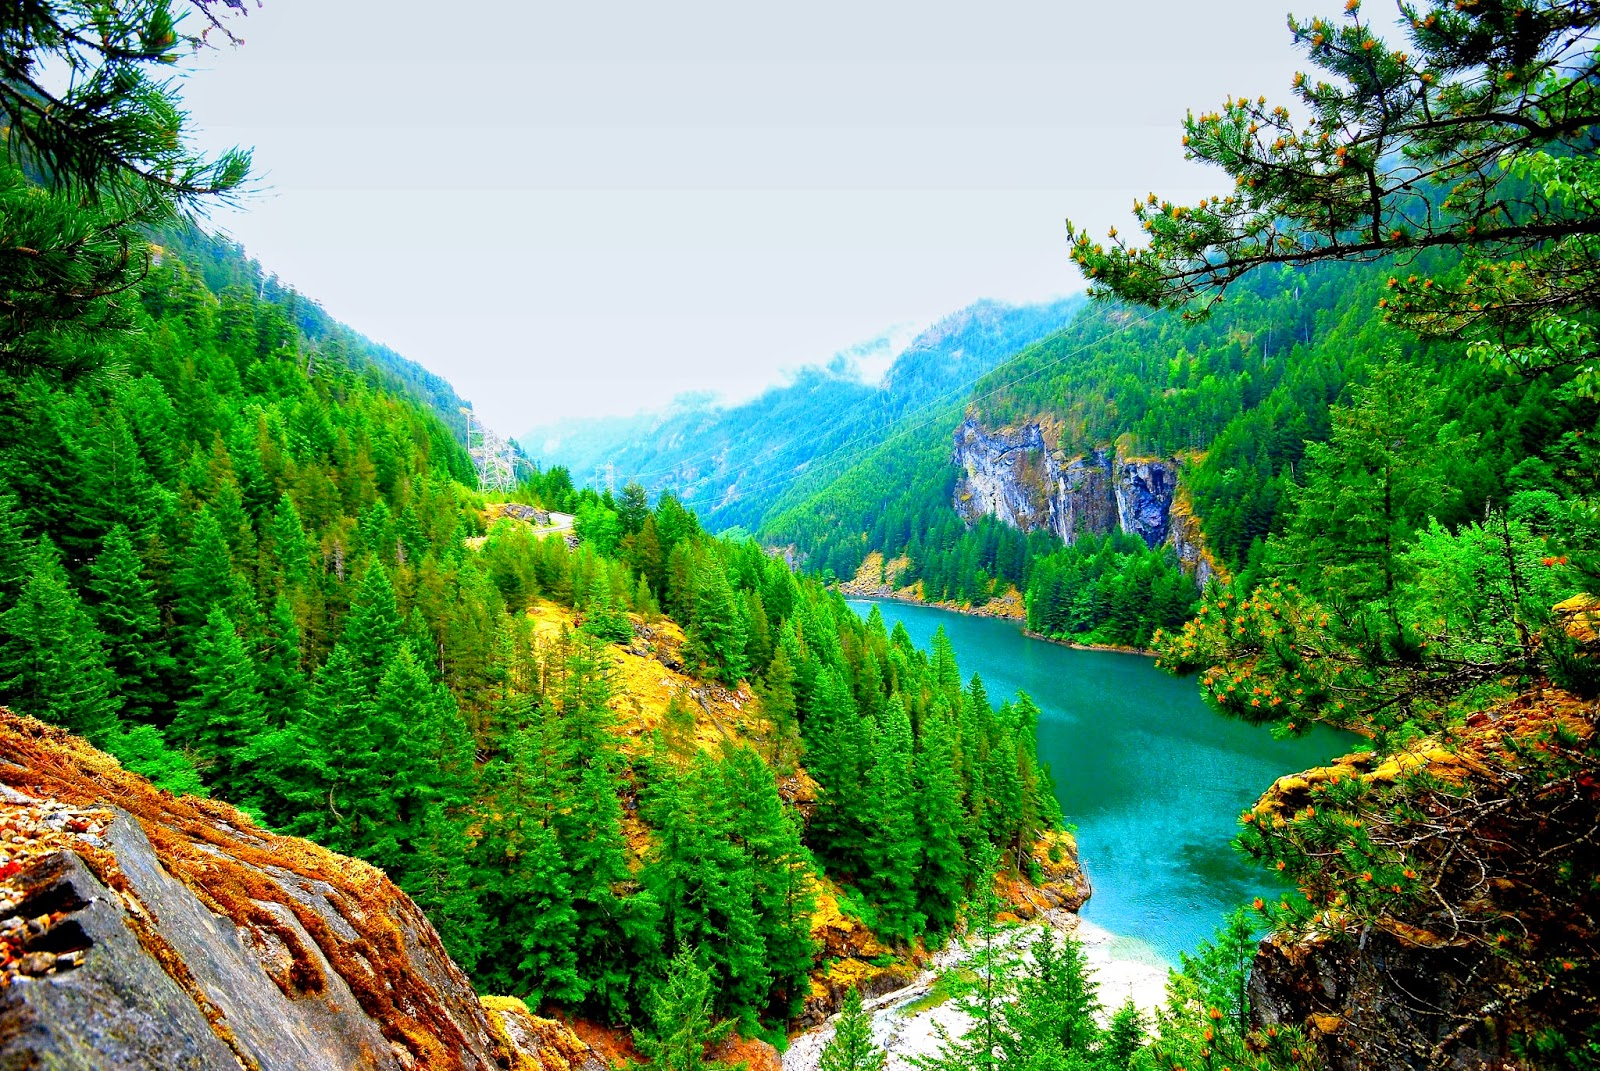 Hd wallpaper down - Mountain Hill Down River View Hd Wide